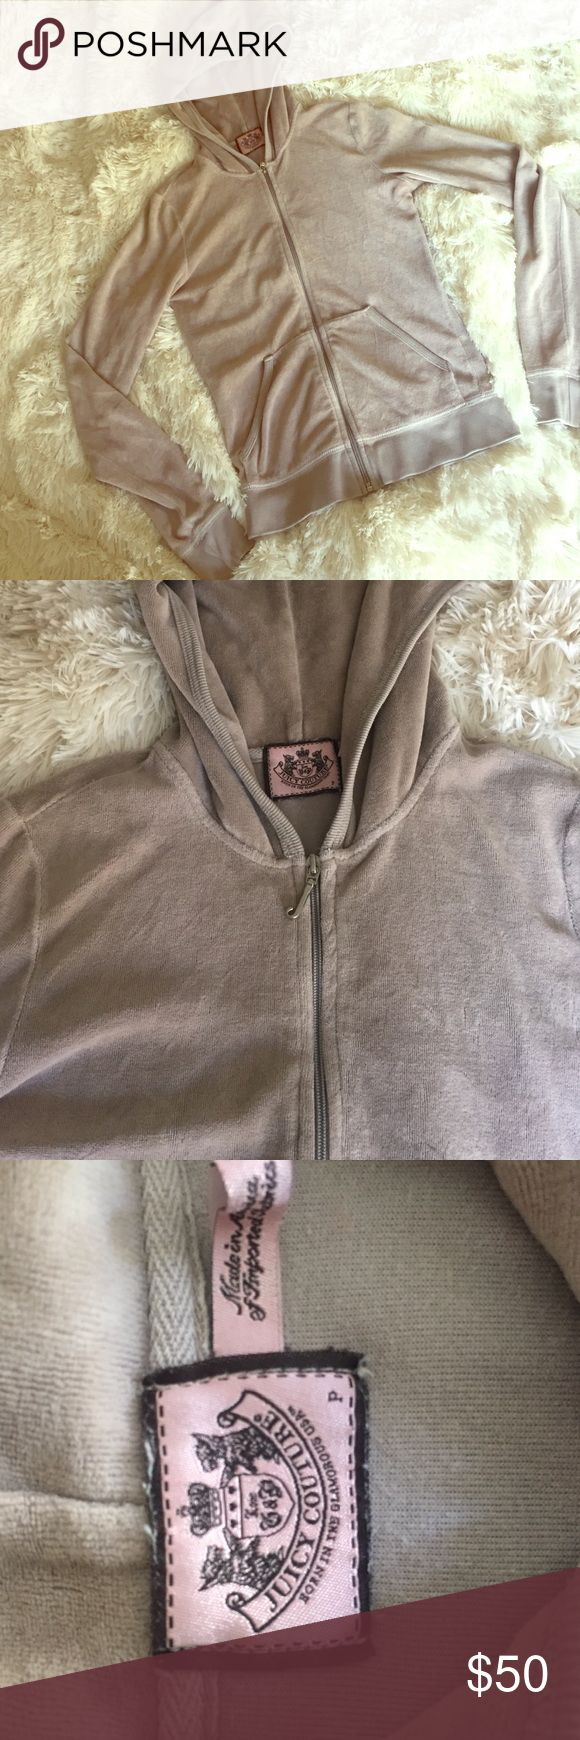 Juicy Couture Tracksuit Jacket Beige, gently worn but in fabulous condition, size is Petite so it's for someone pretty little. Tag and zipper still intact. Juicy Couture Sweaters